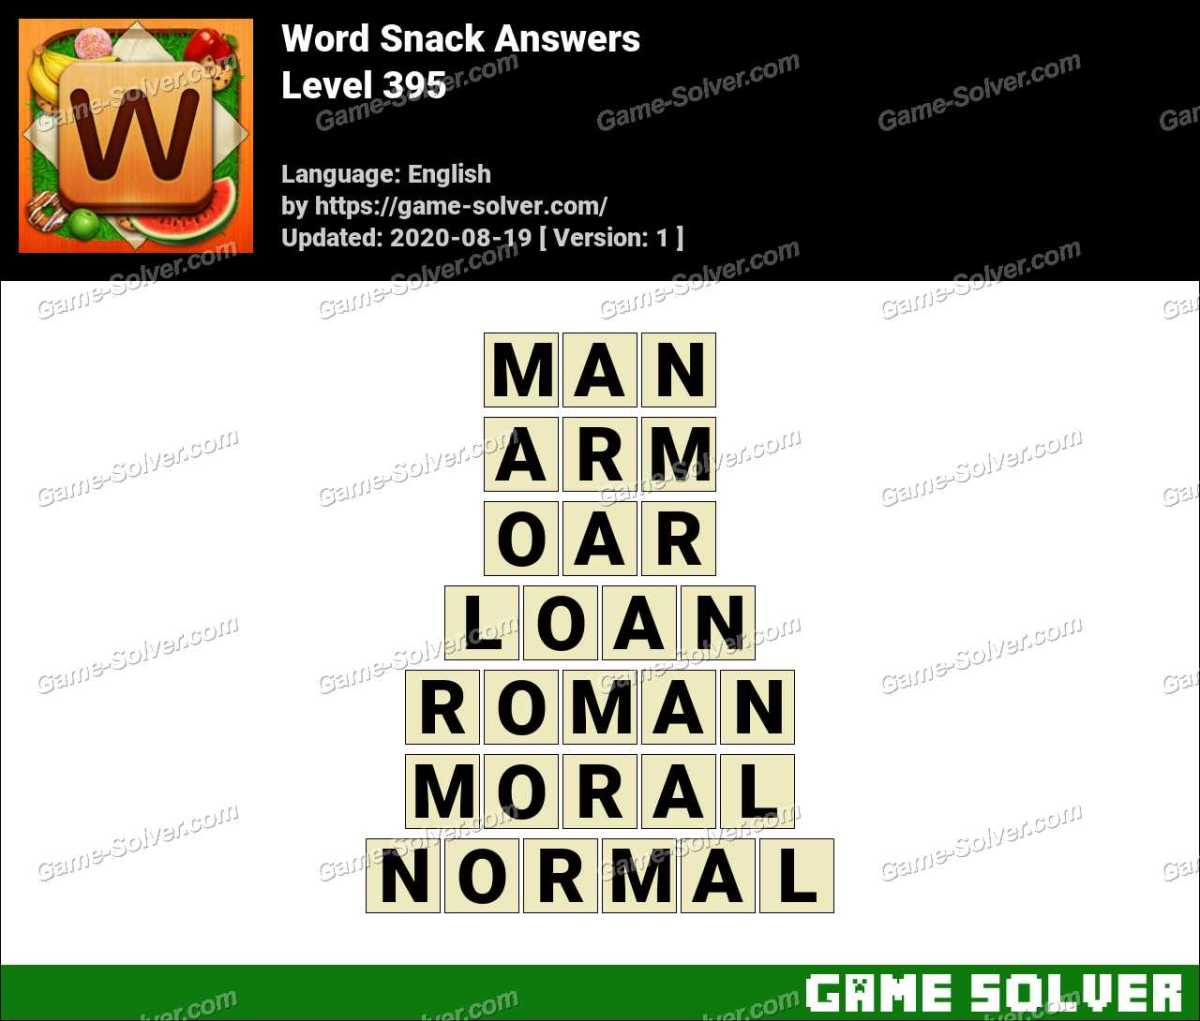 Word Snack Level 395 Answers